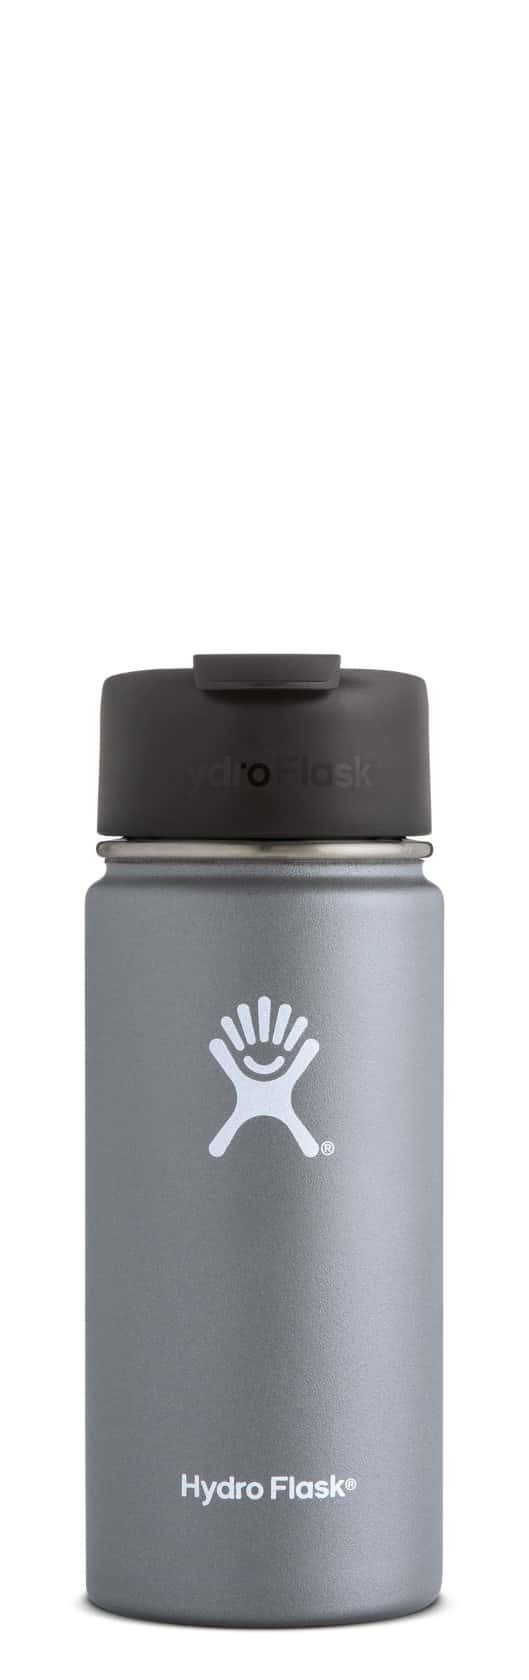 Hydro Flask-Hydro Flask 16 oz. Wide Mouth with Flip Lid